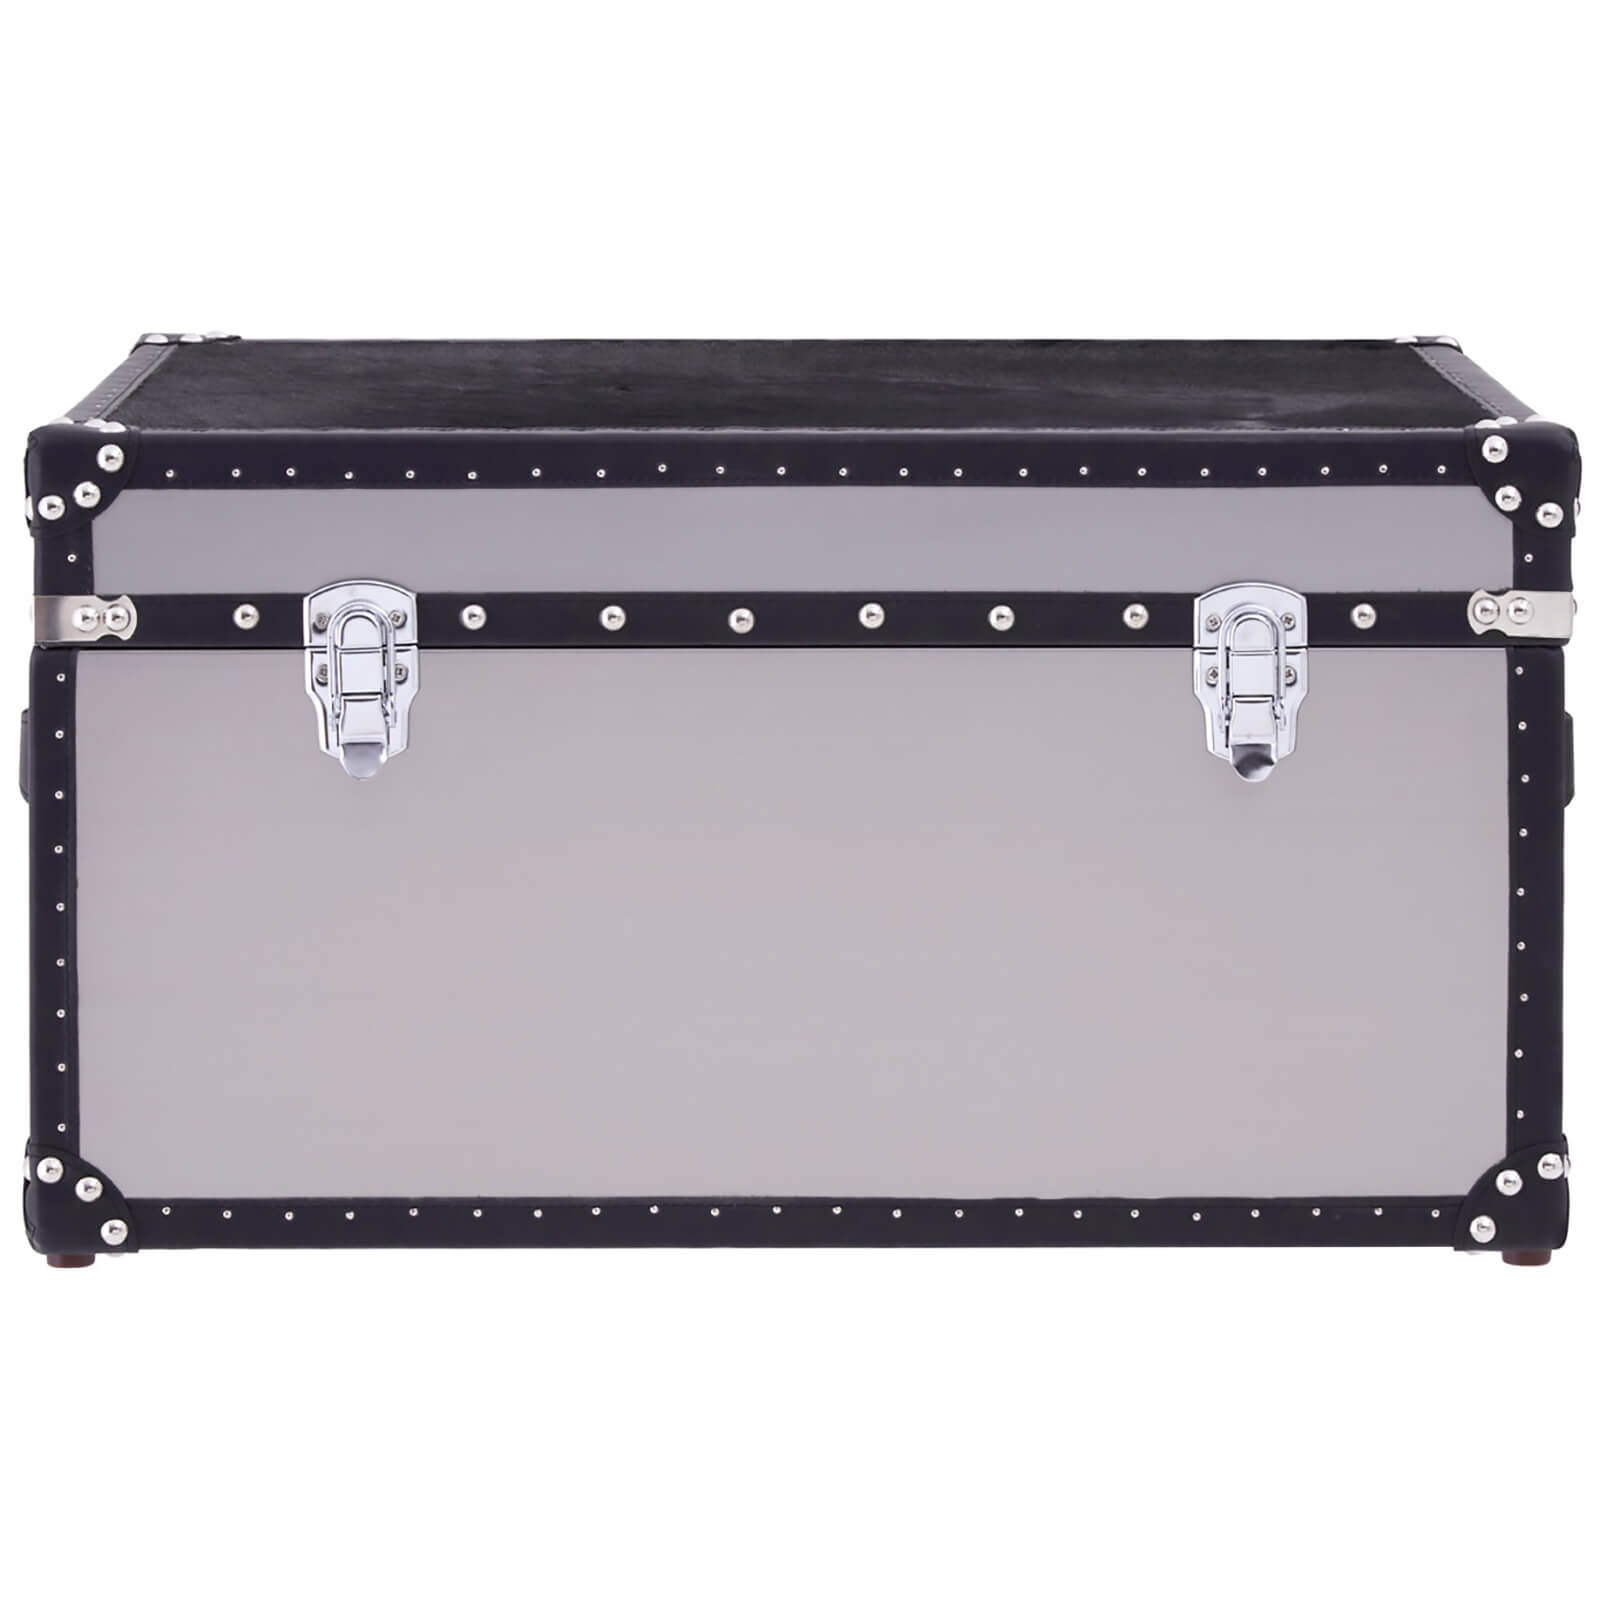 Fifty Five South Kensington Townhouse Cowhide Storage Trunk - Black/White